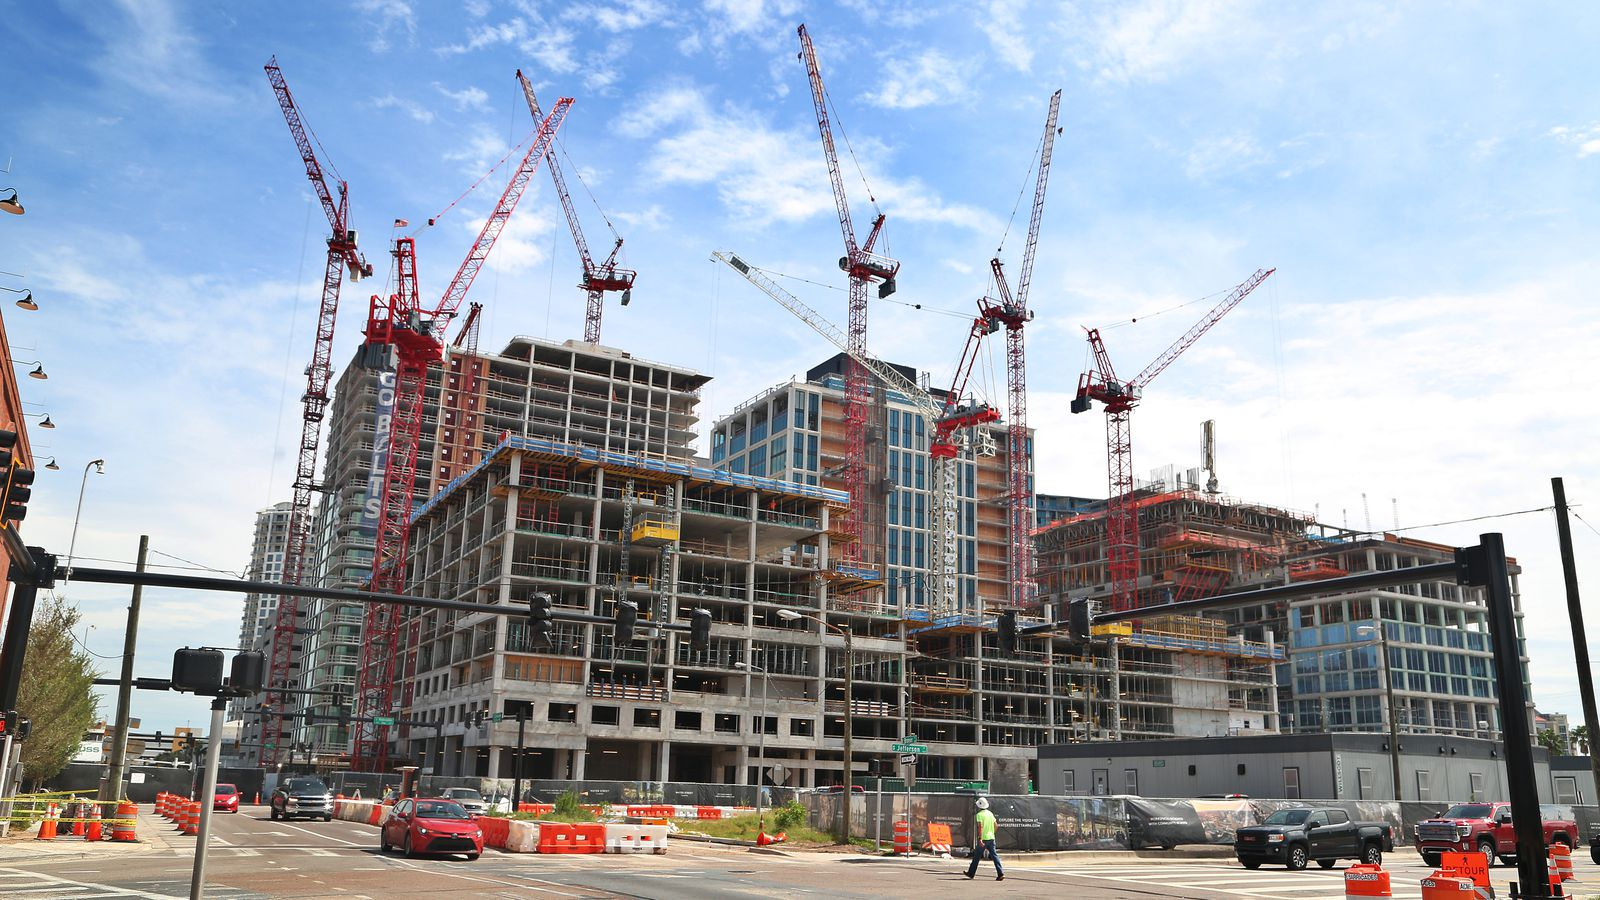 Tampa Bay Commercial Real Estate: Commercial sublease availability hit record high in Q4 of 2020